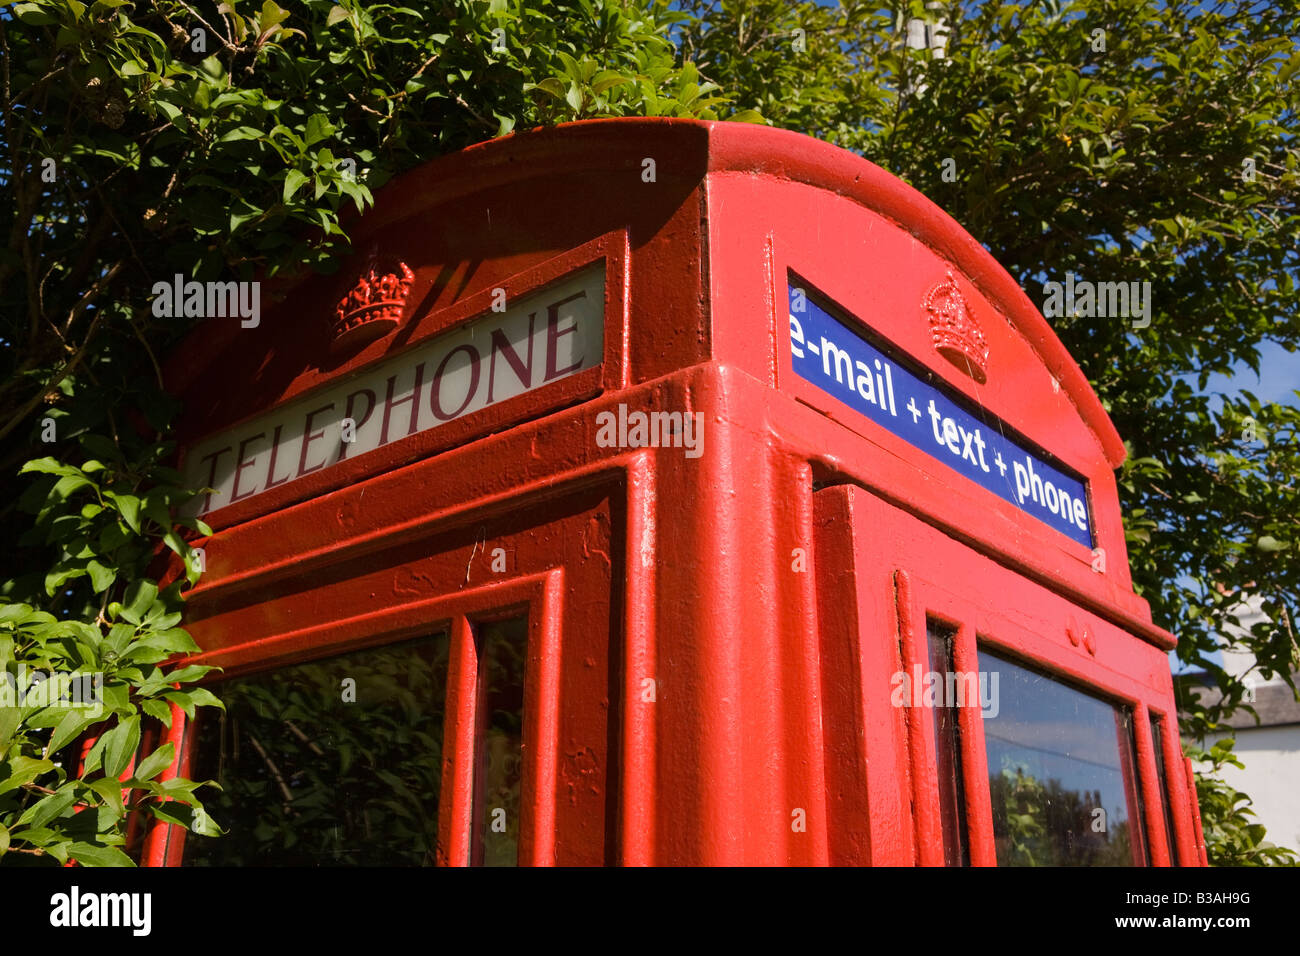 UK Cheshire Dunham on the Hill village phone box with email text phone sign - Stock Image